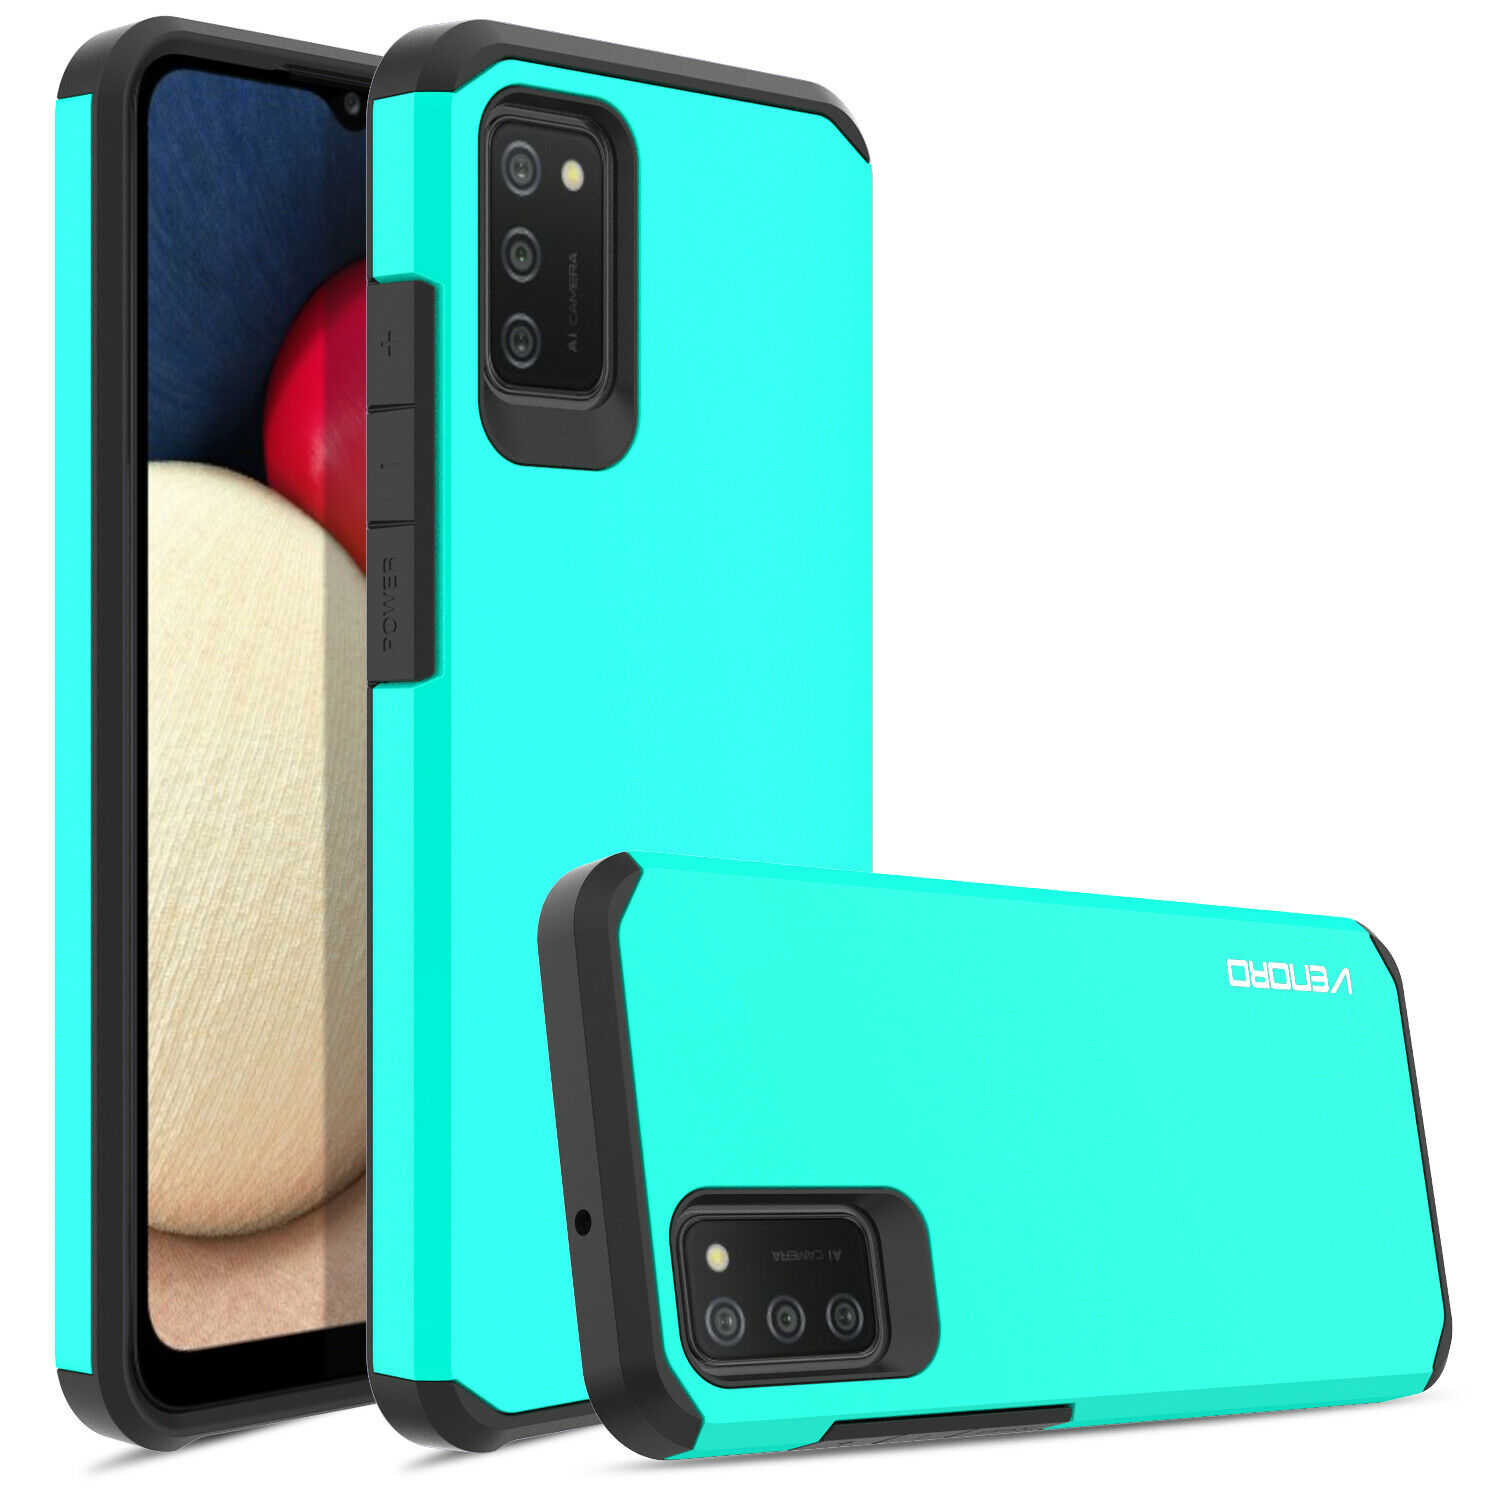 For Samsung Galaxy A02S Rugged Armor Case Cover,Tempered Glass Screen Protector Cases, Covers & Skins